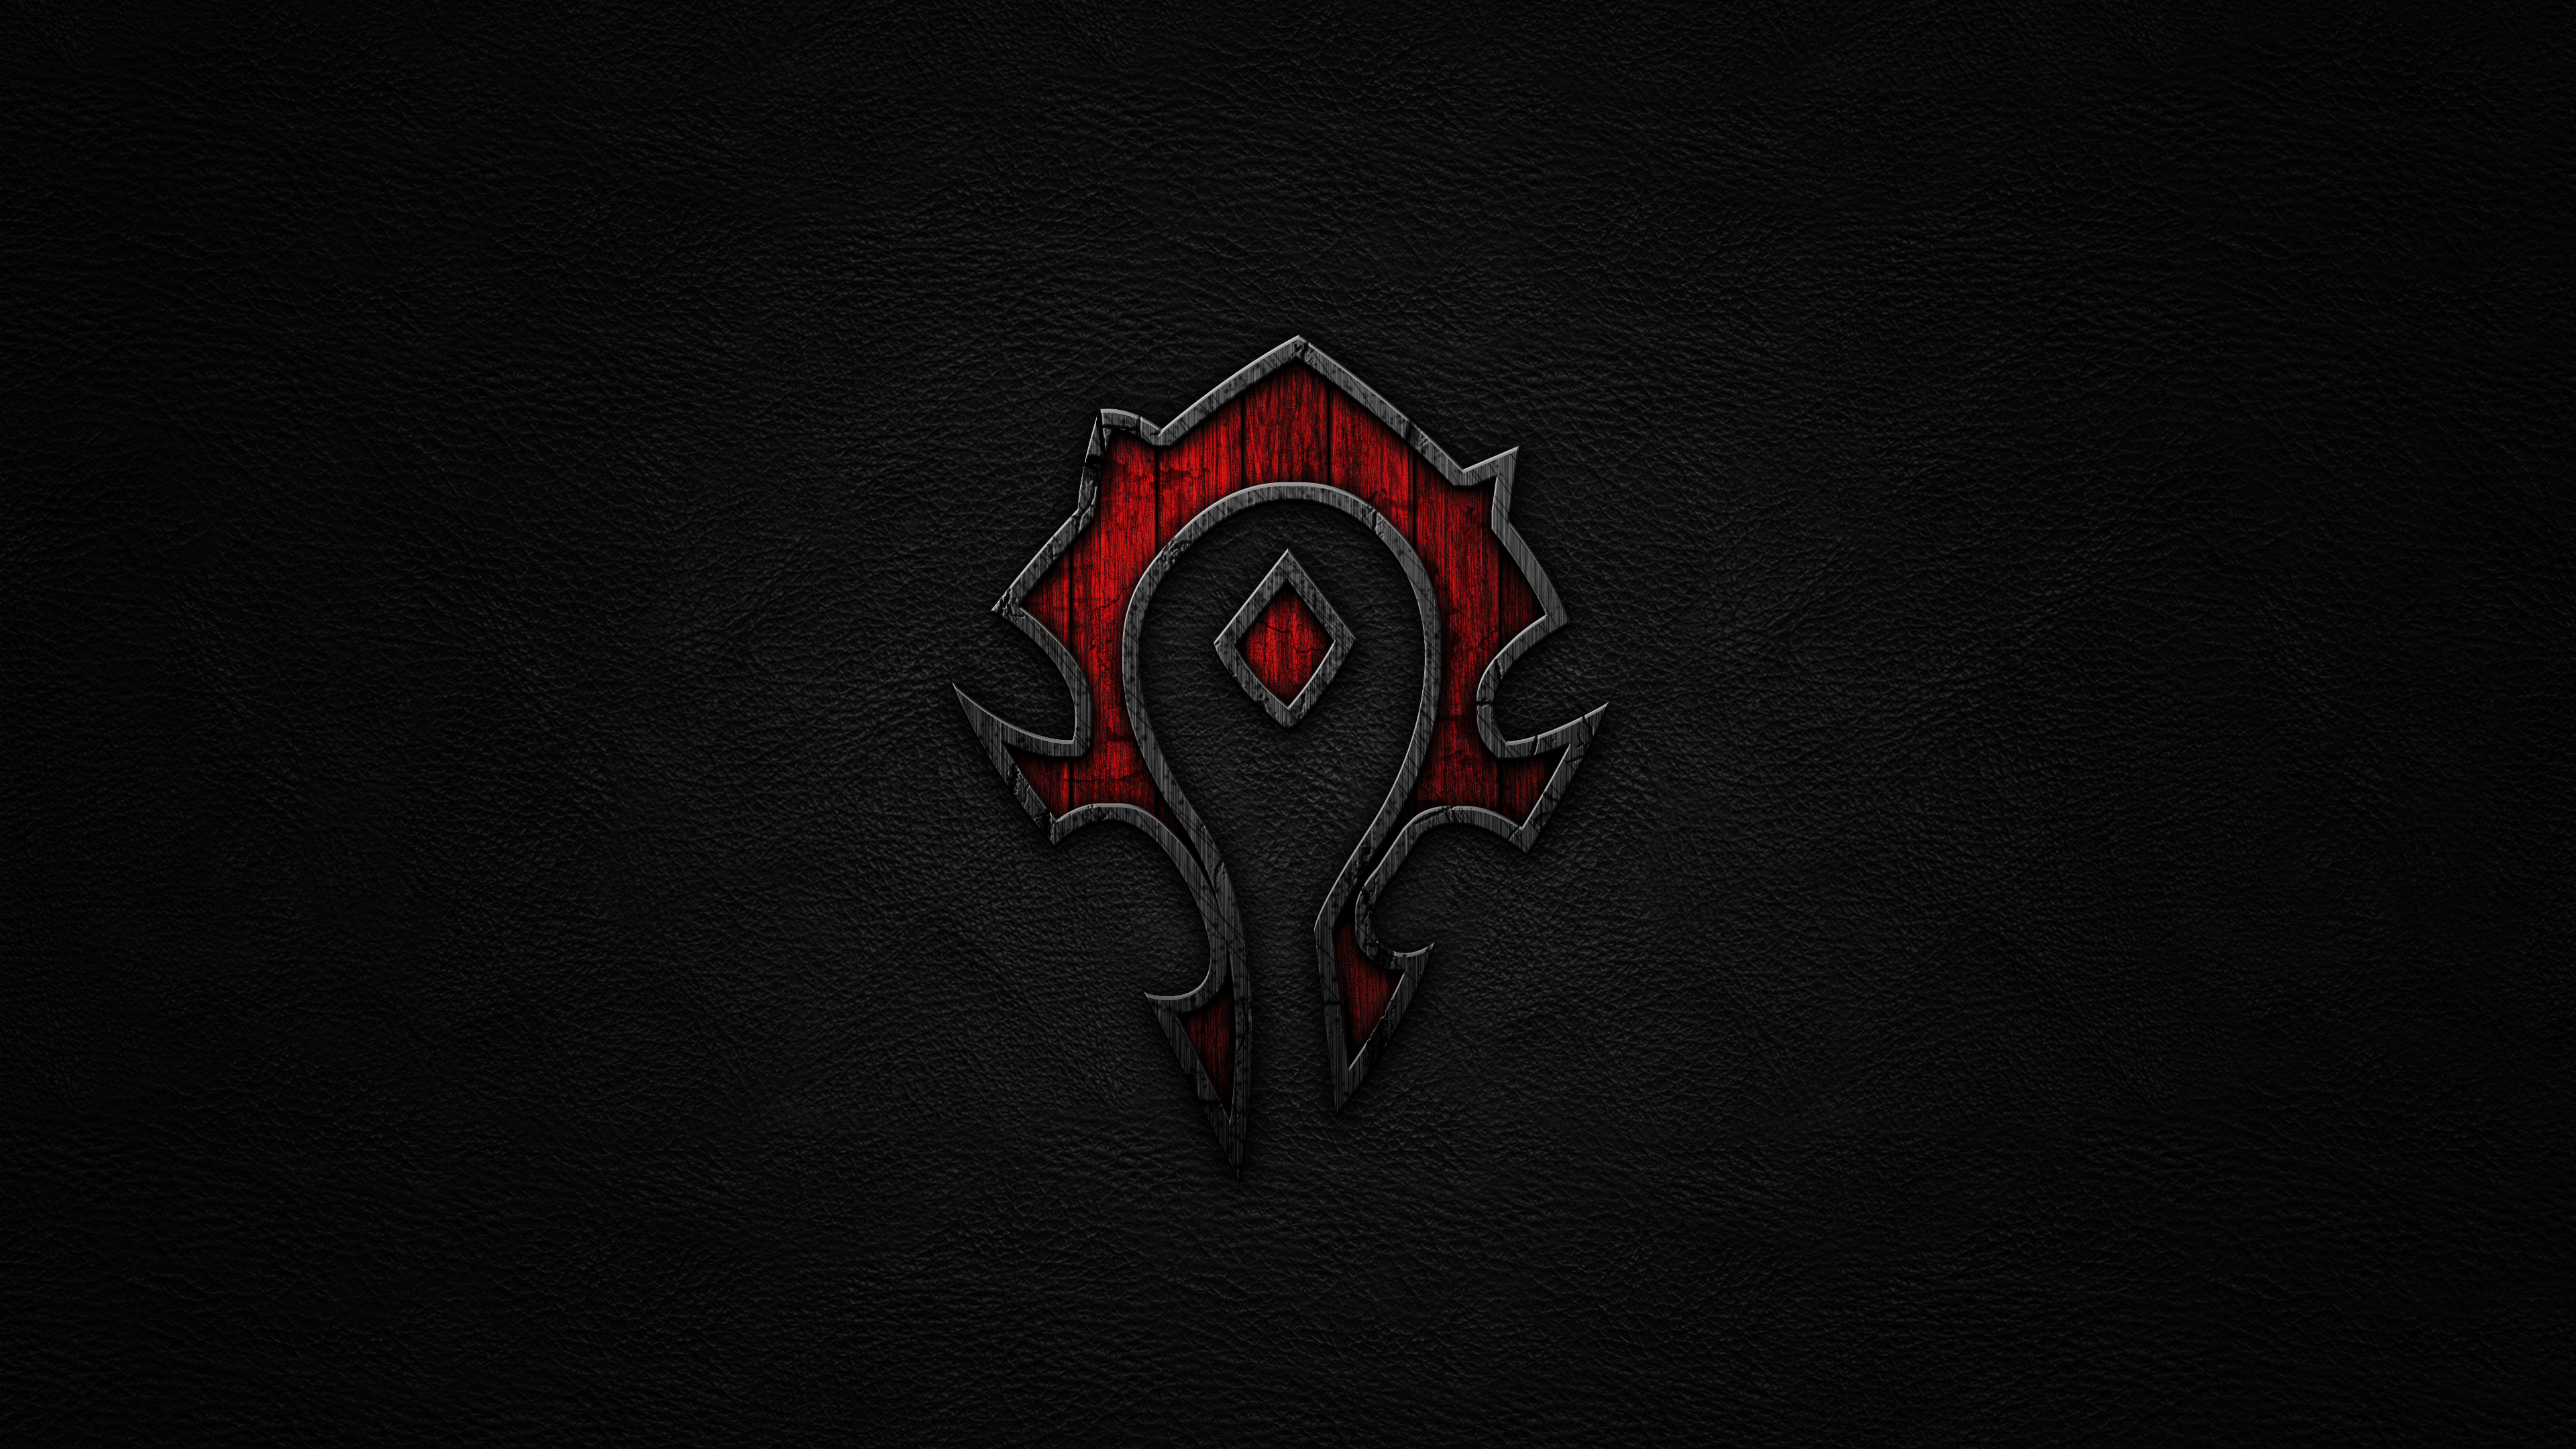 For The Horde Free Download Wallpaper By Studiovulcan Logo Wallpaper Hd Jordan Logo Wallpaper Gaming Wallpapers Hd